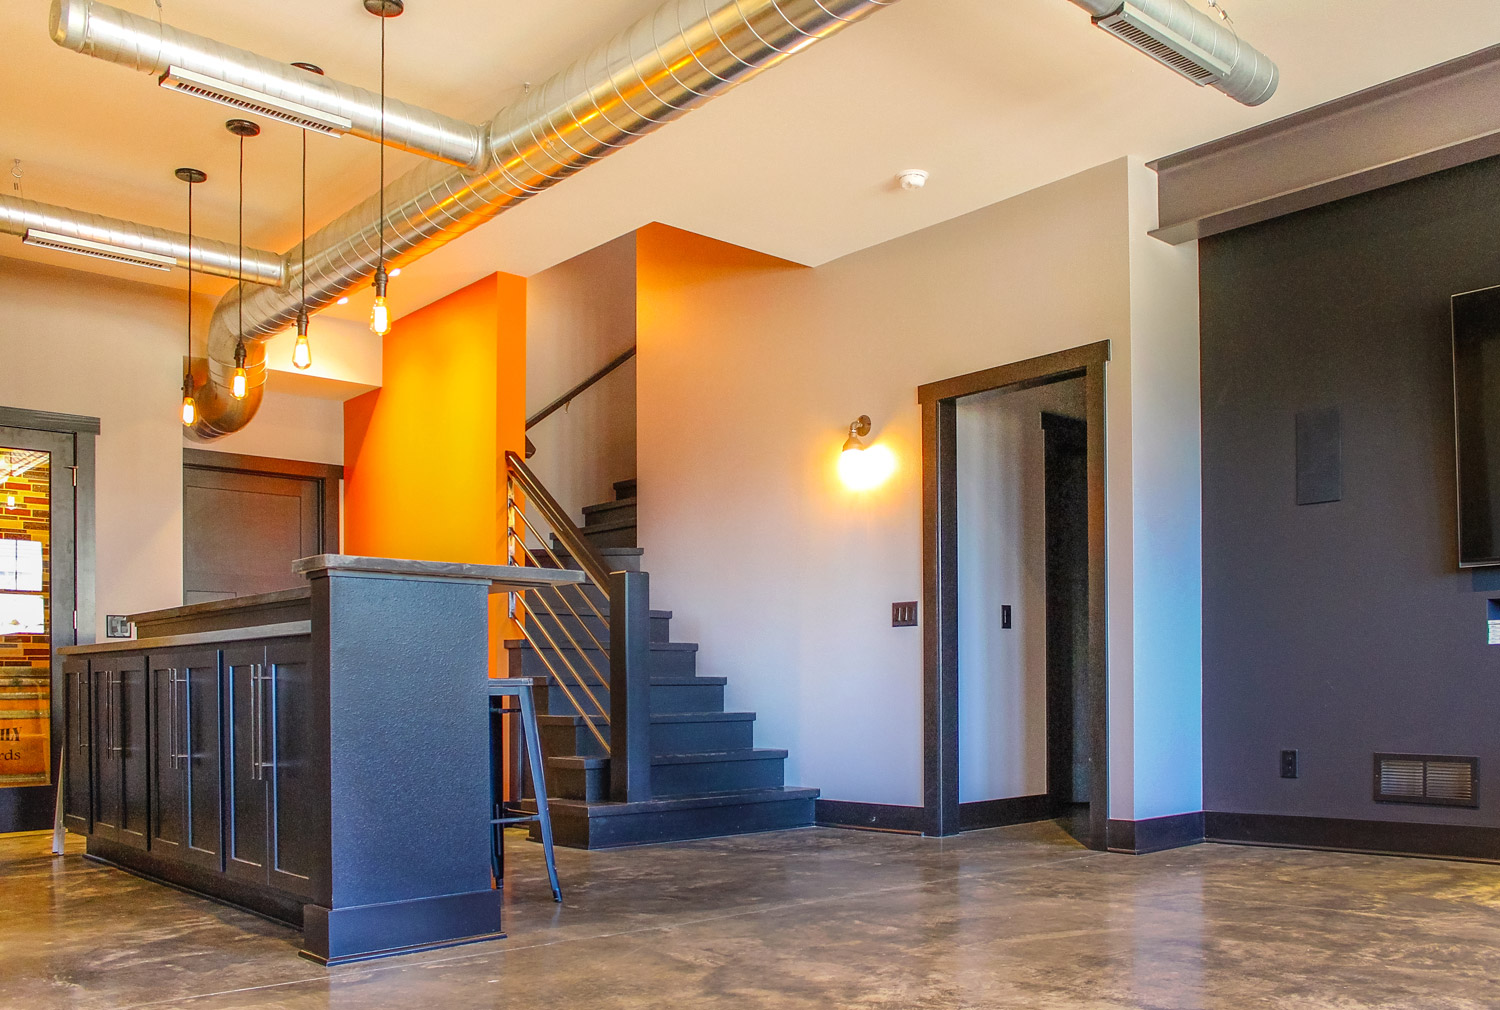 - A contemporary finished lower level design transformed this basement into an industrial chic space.